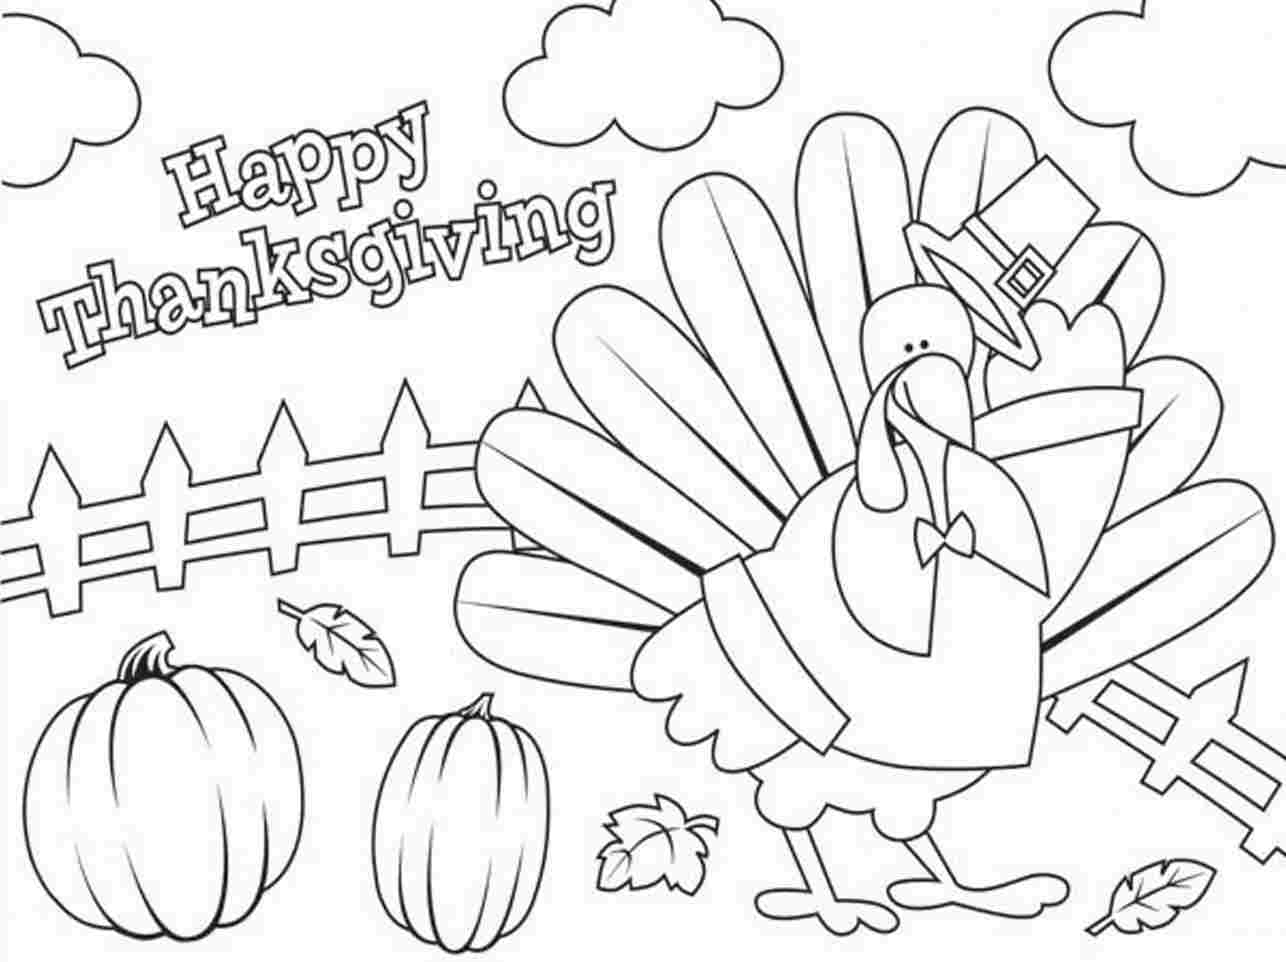 Thanksgiving Coloring Pages For Boys Images Of Thanksgiving Coloring Pages Printable Sabadaphnecottage